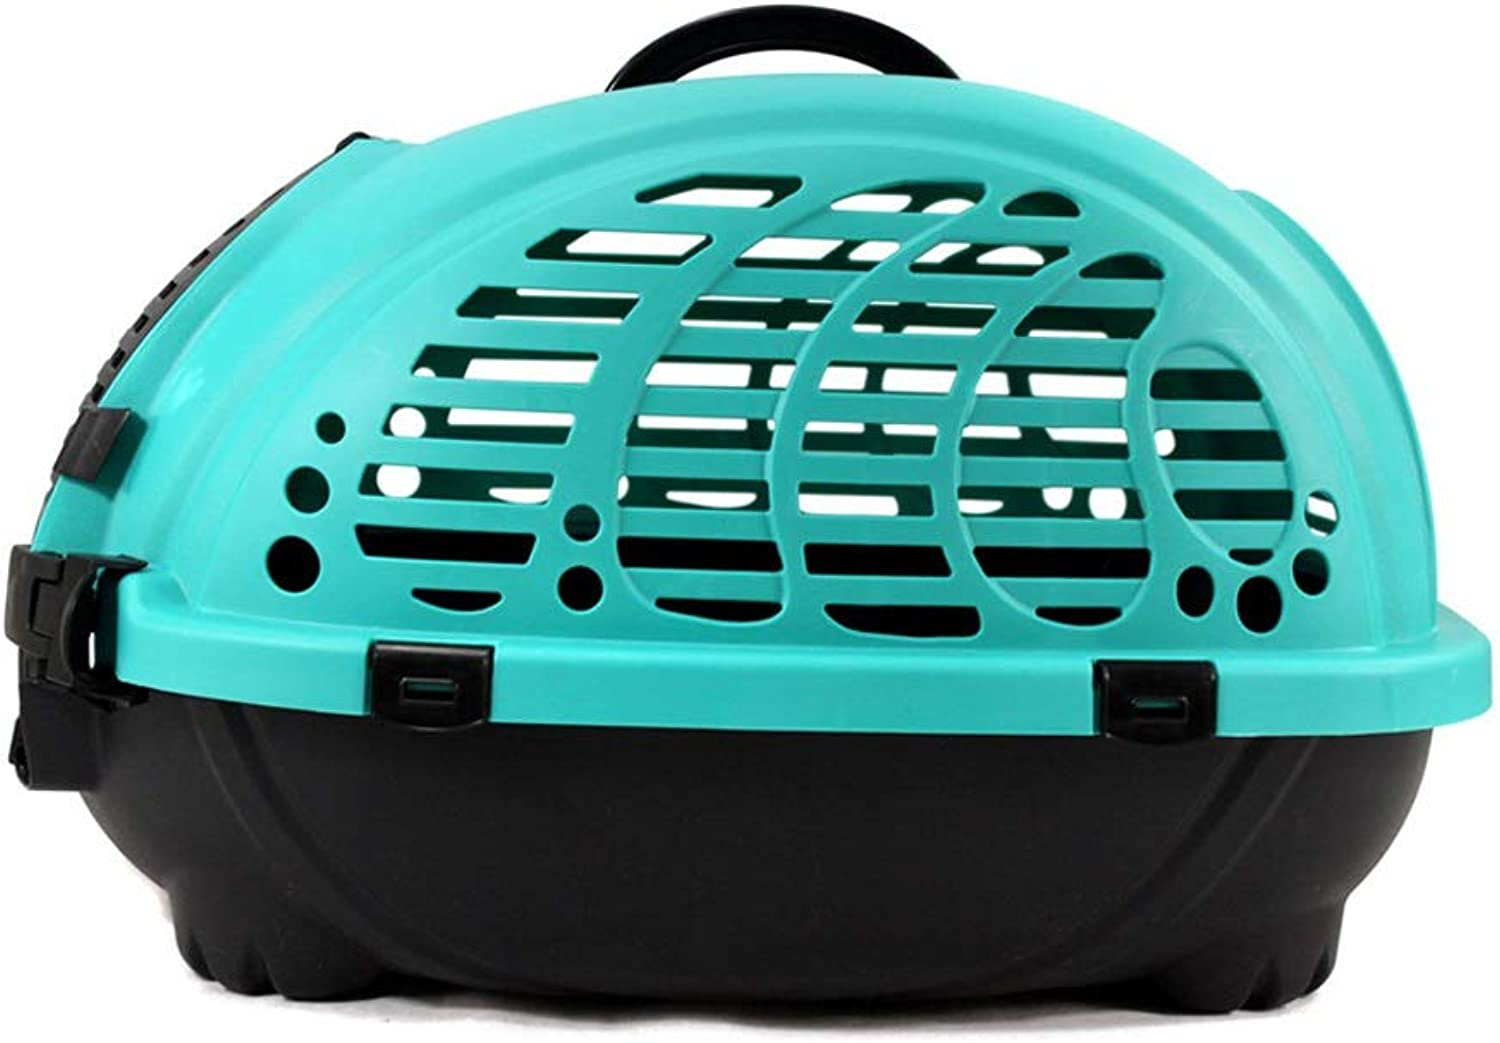 Pet Hard Cover Collapsible Cat Carrier  Pet Travel Kennel with TopLoad & Foldable Feature for for Medium Puppy and Cats,Easy Trips with Dogs and Cats (color   Green)